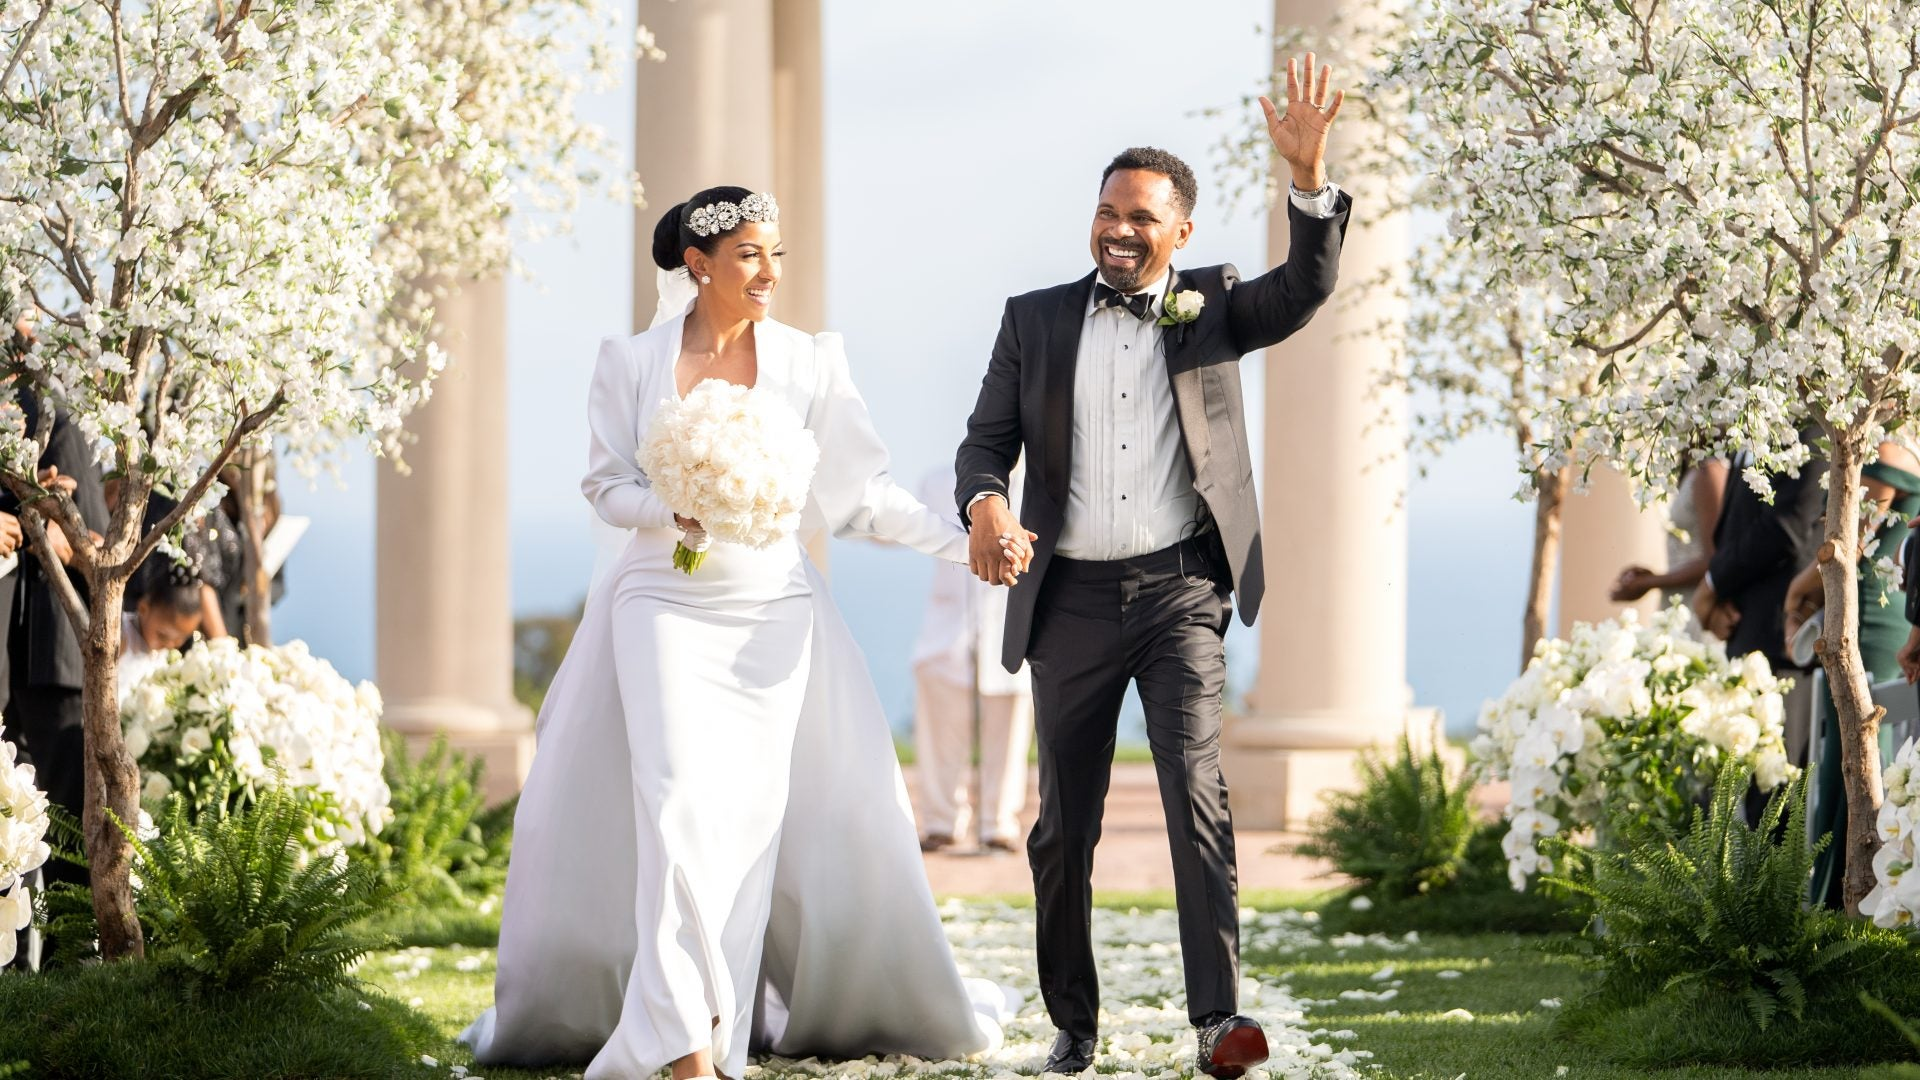 Oh My!!  Mike Epps Ex-Wife Say's He Was Cheating on Her With His New Wife [VIDEO]